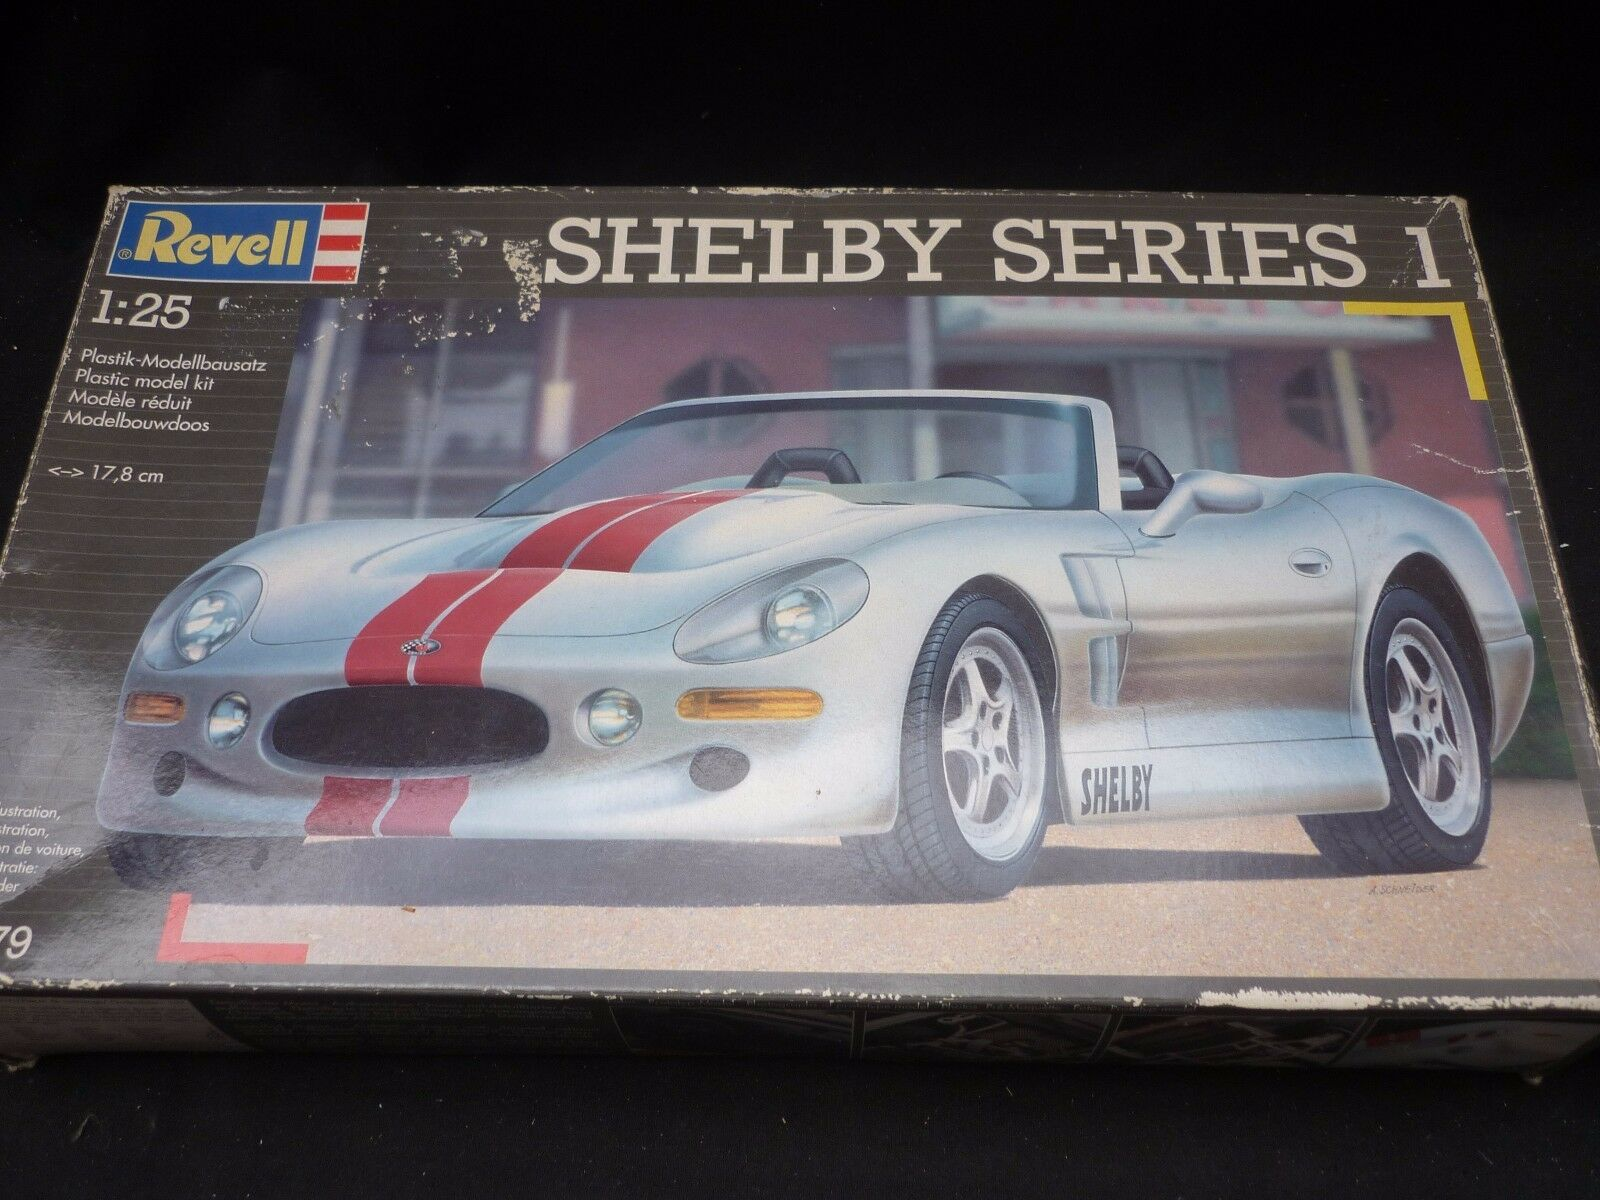 A Revell un made plastic kit of a Shelby series, All in factory sealed bags.